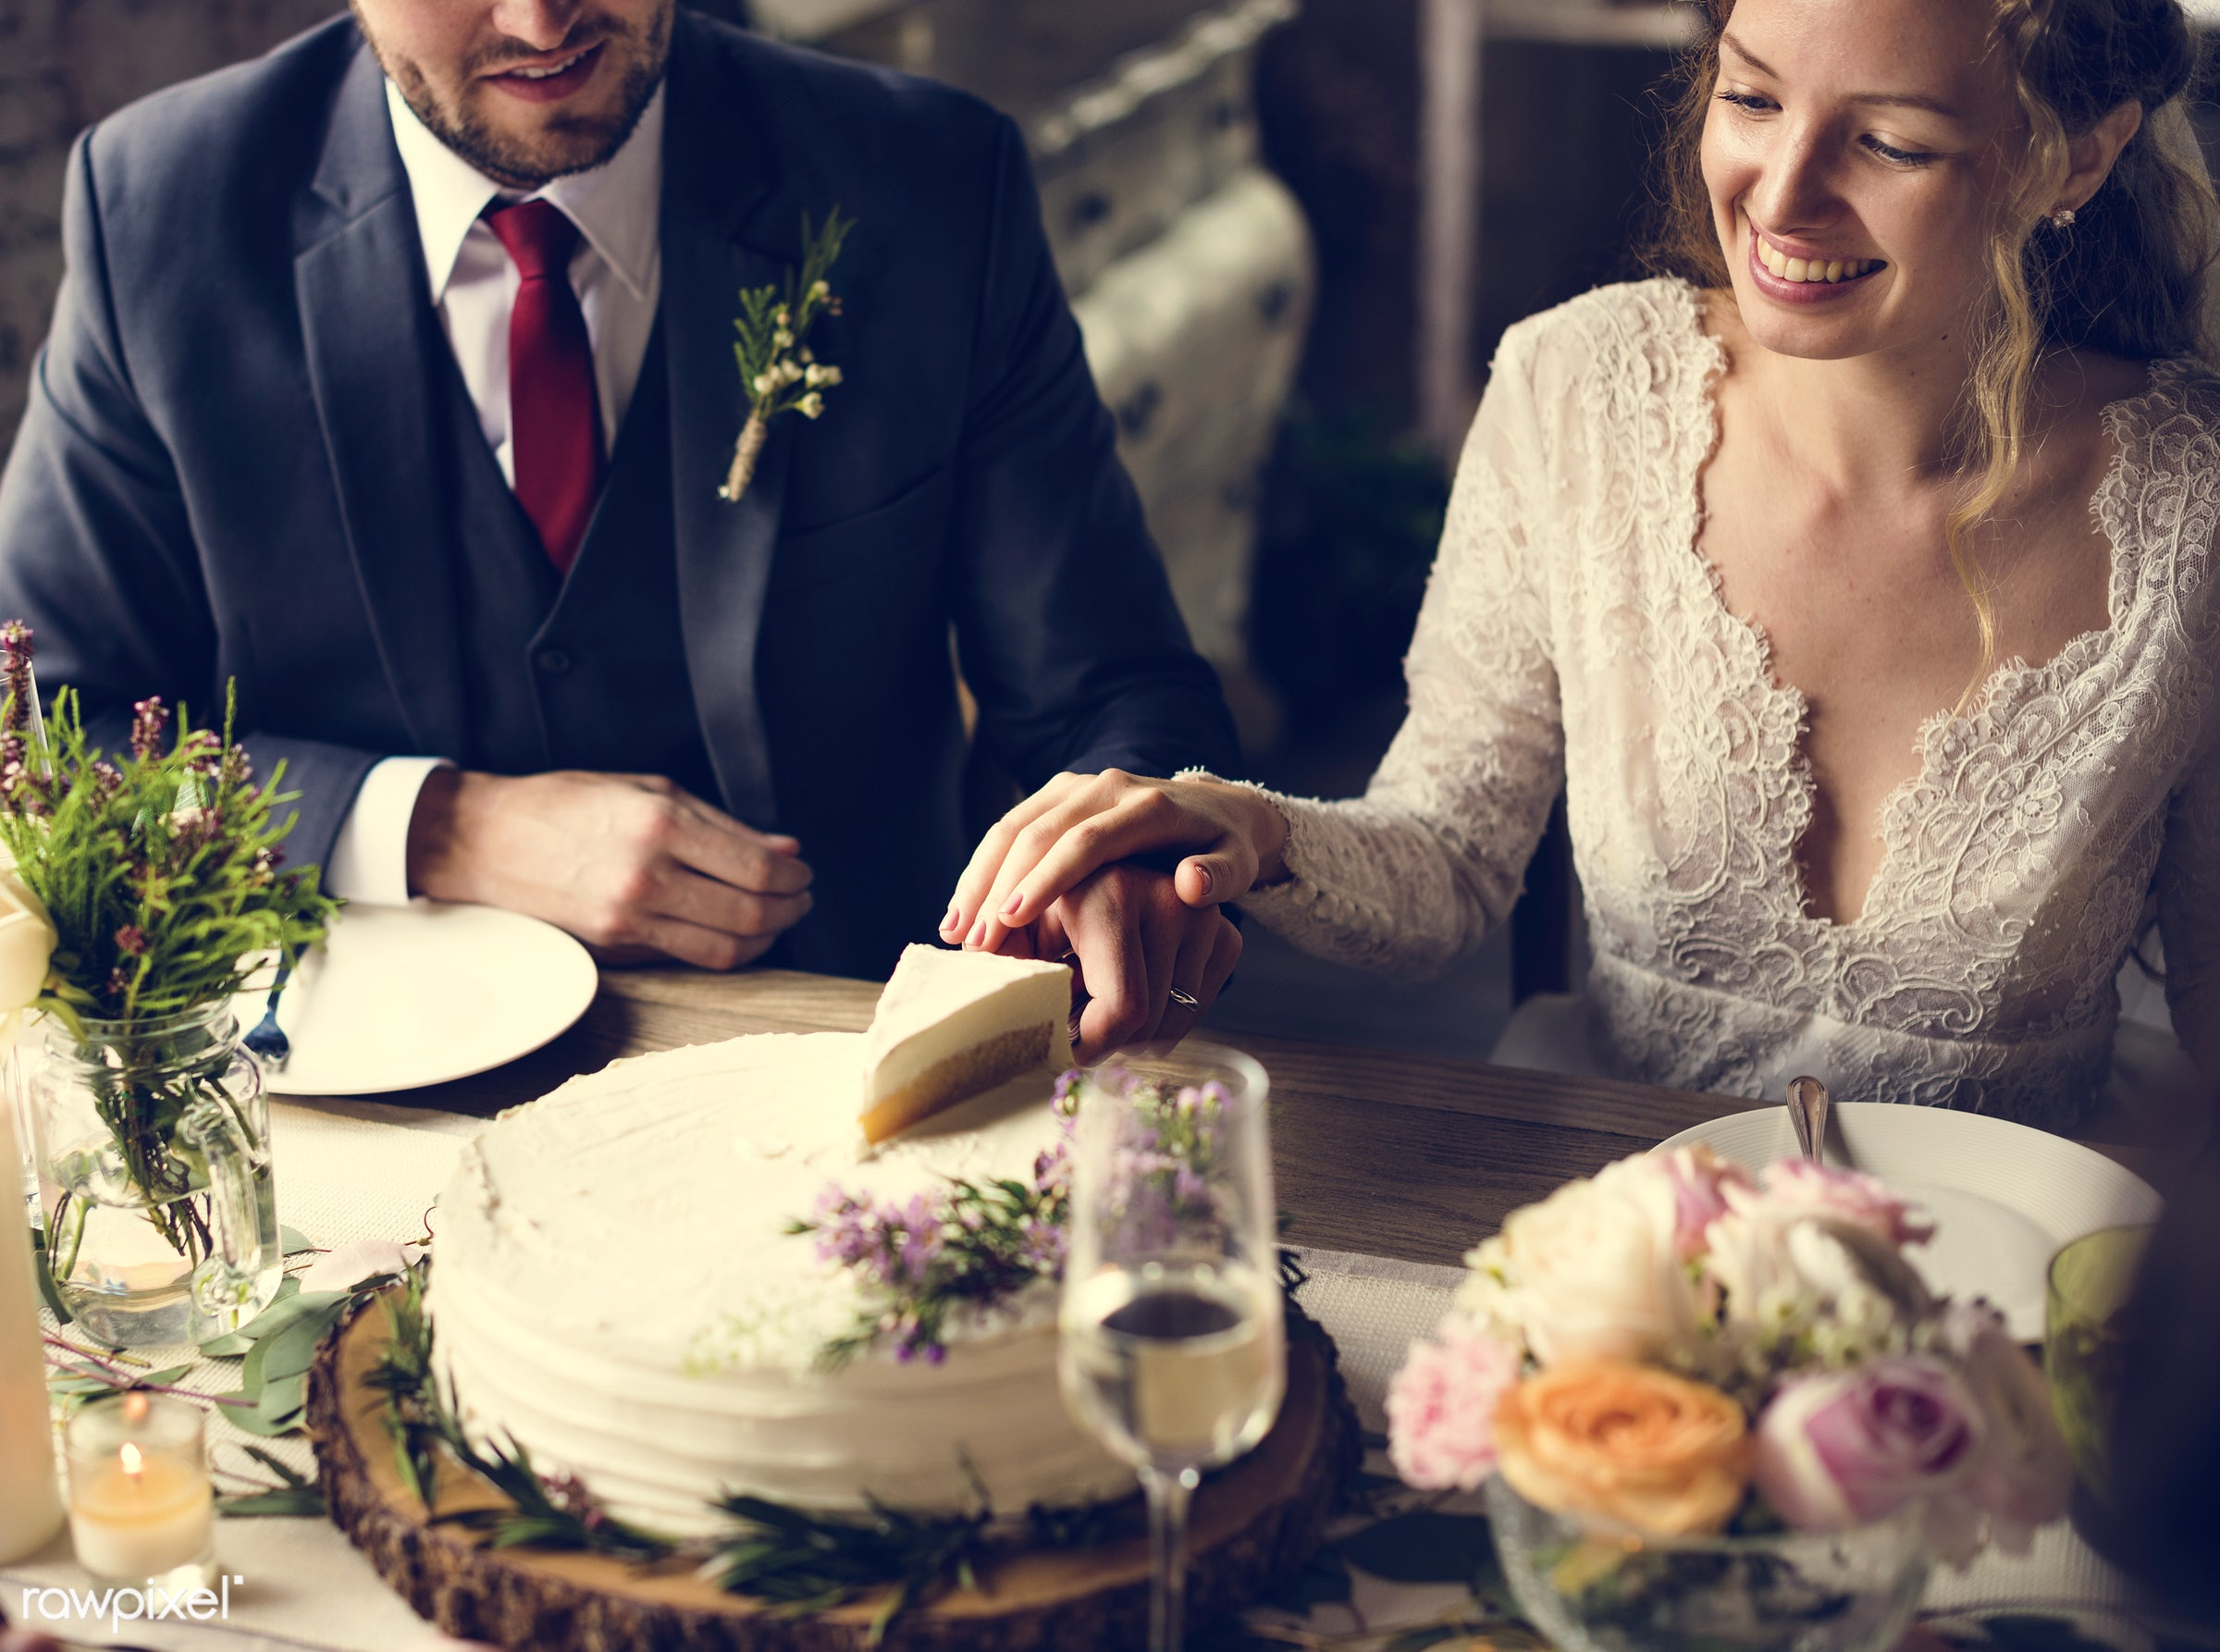 expression, person, smitten, people, together, love, friends, married, event, woman, family, gathering, cheerful, cake,...